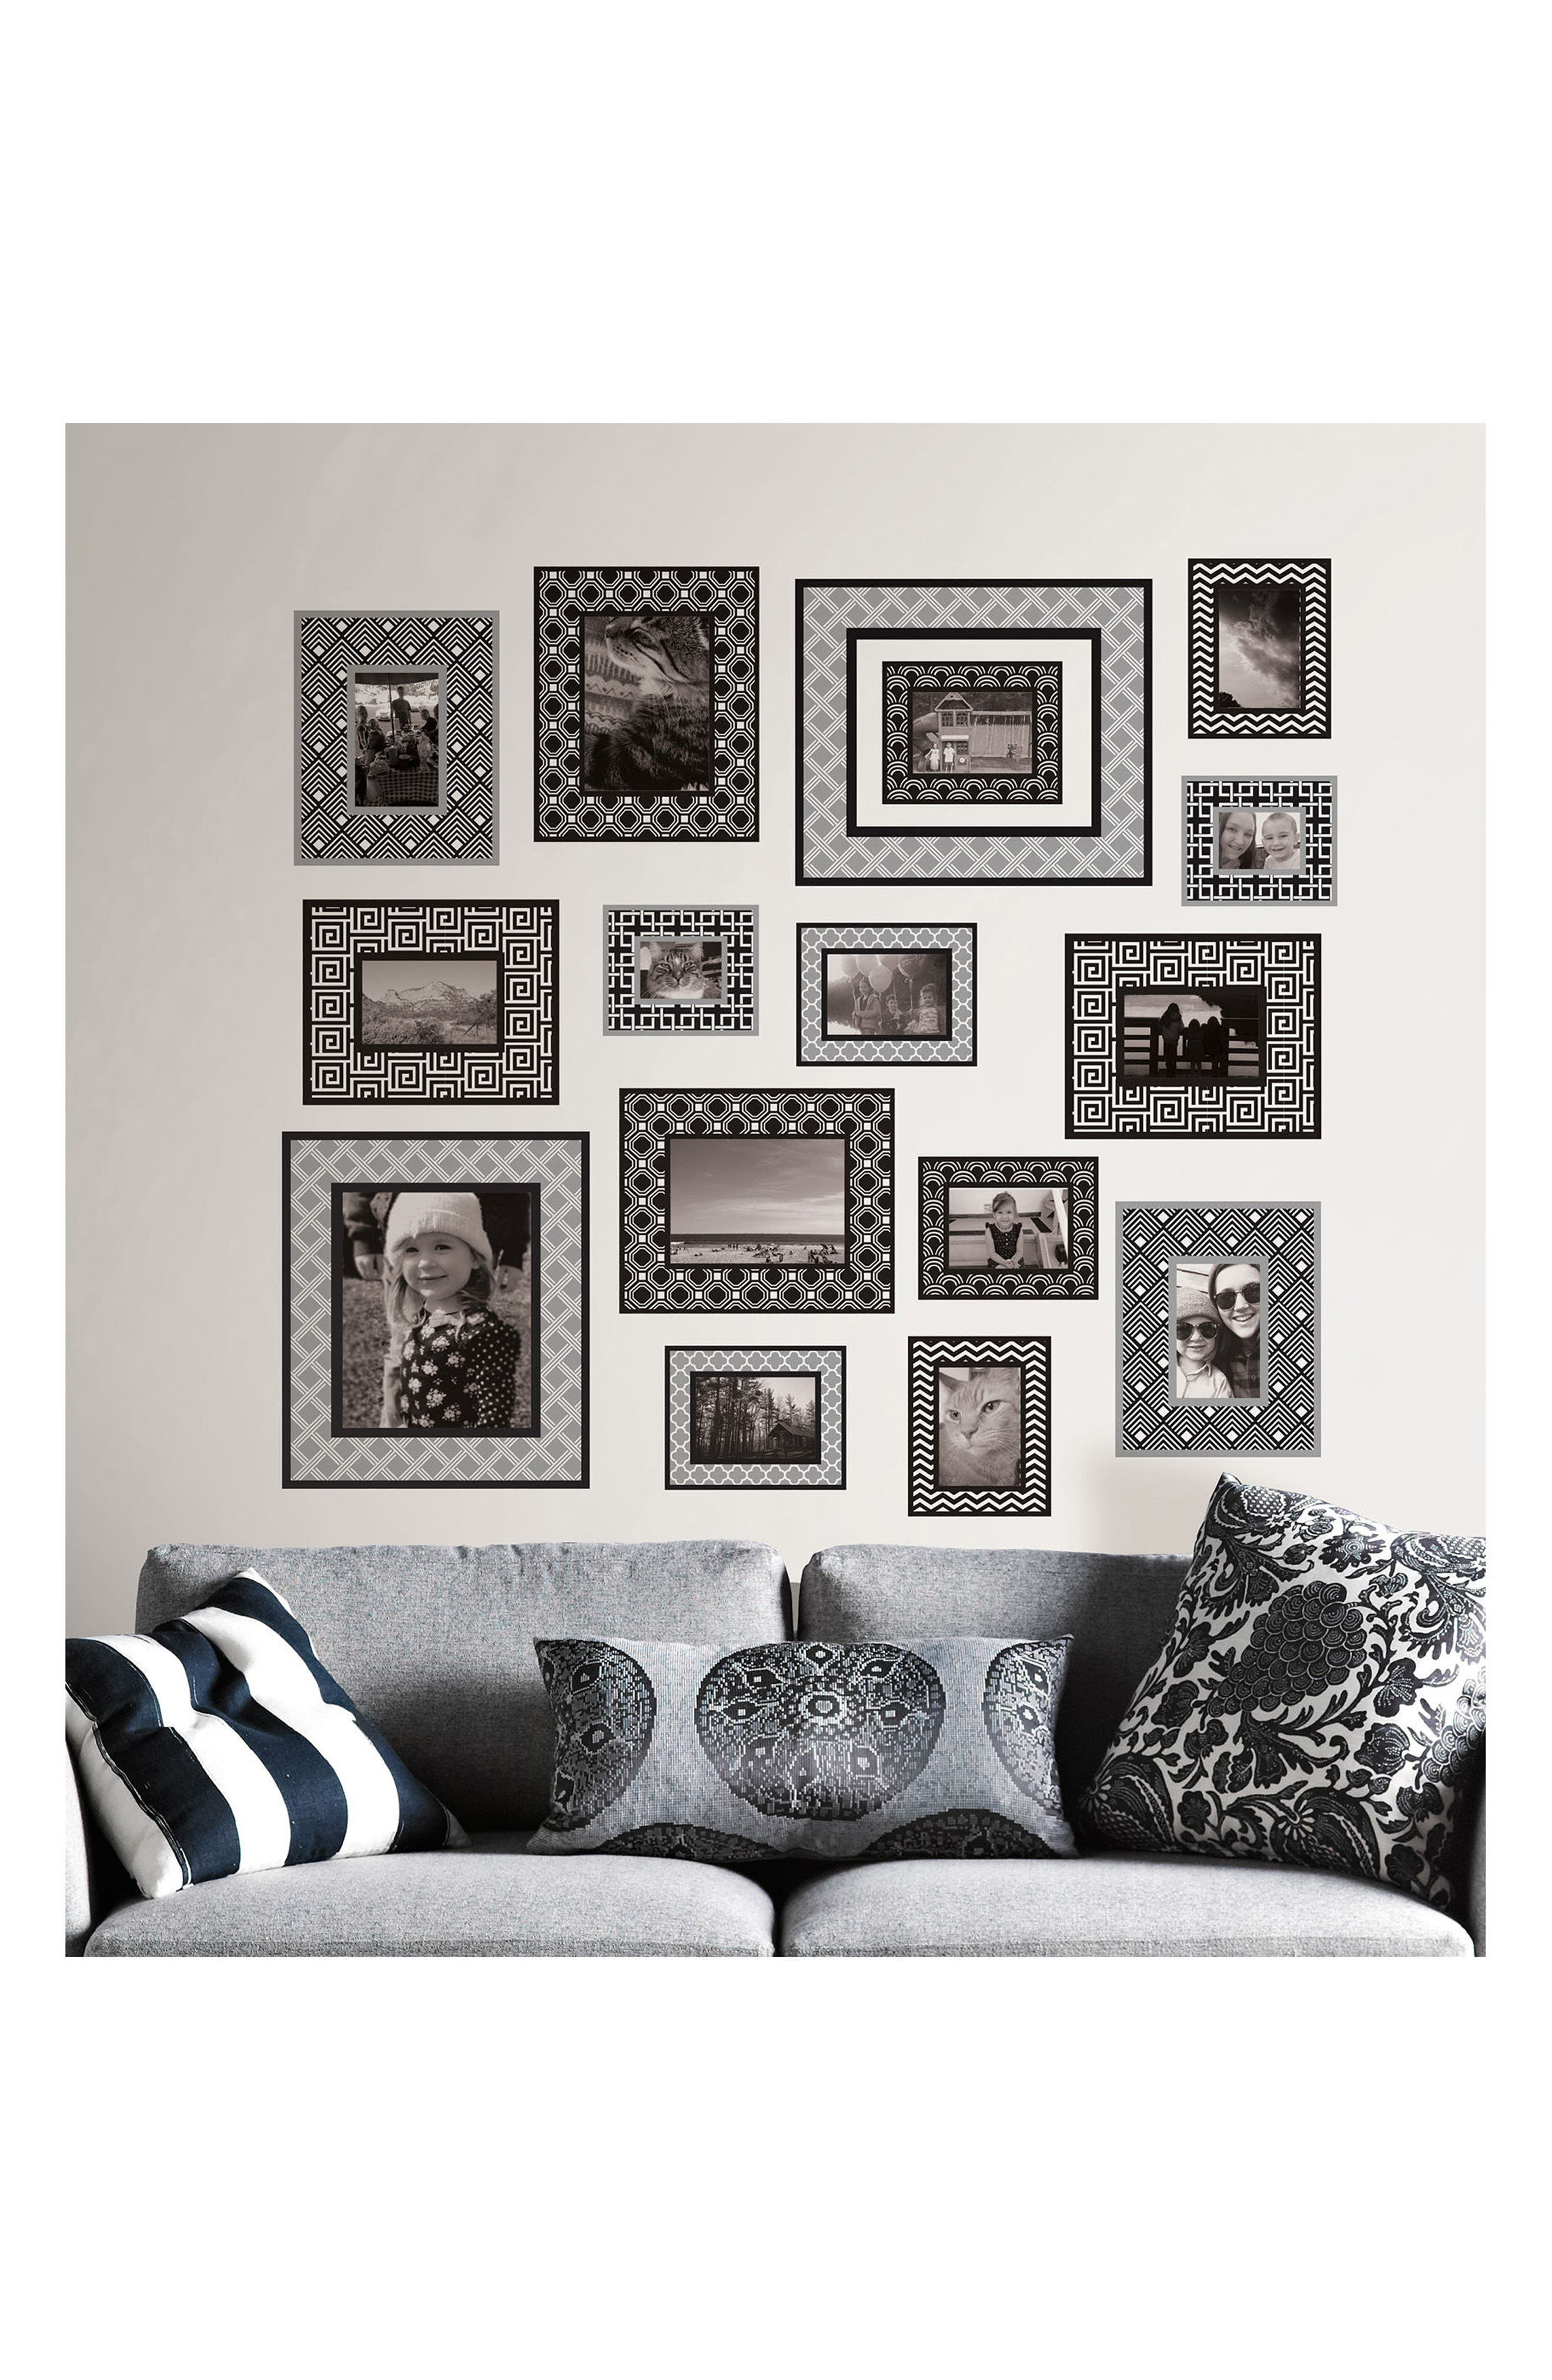 Photo Gallery 16-Piece Wall Art Decal Set,                             Alternate thumbnail 2, color,                             001